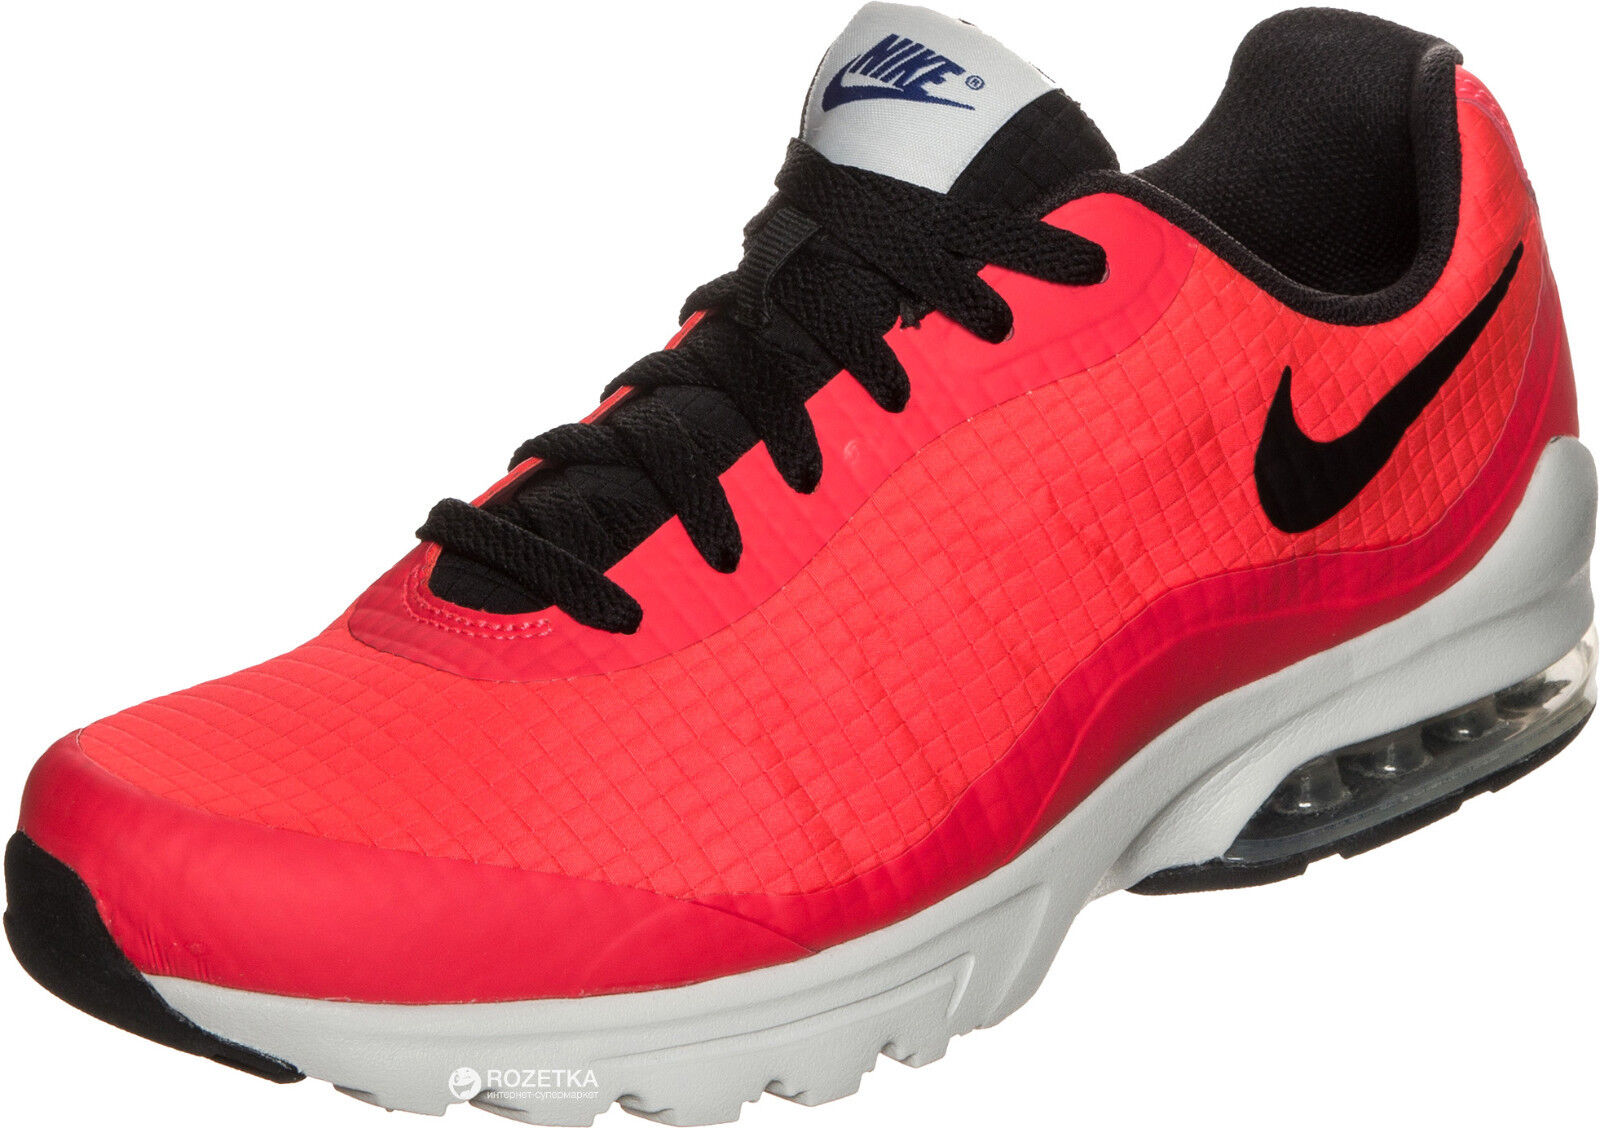 0a0217e3b1e6 NIKE AIR MAX INVIGOR LOW RUNNING MEN SHOES ORANGE BLACK 870614-600 870614-